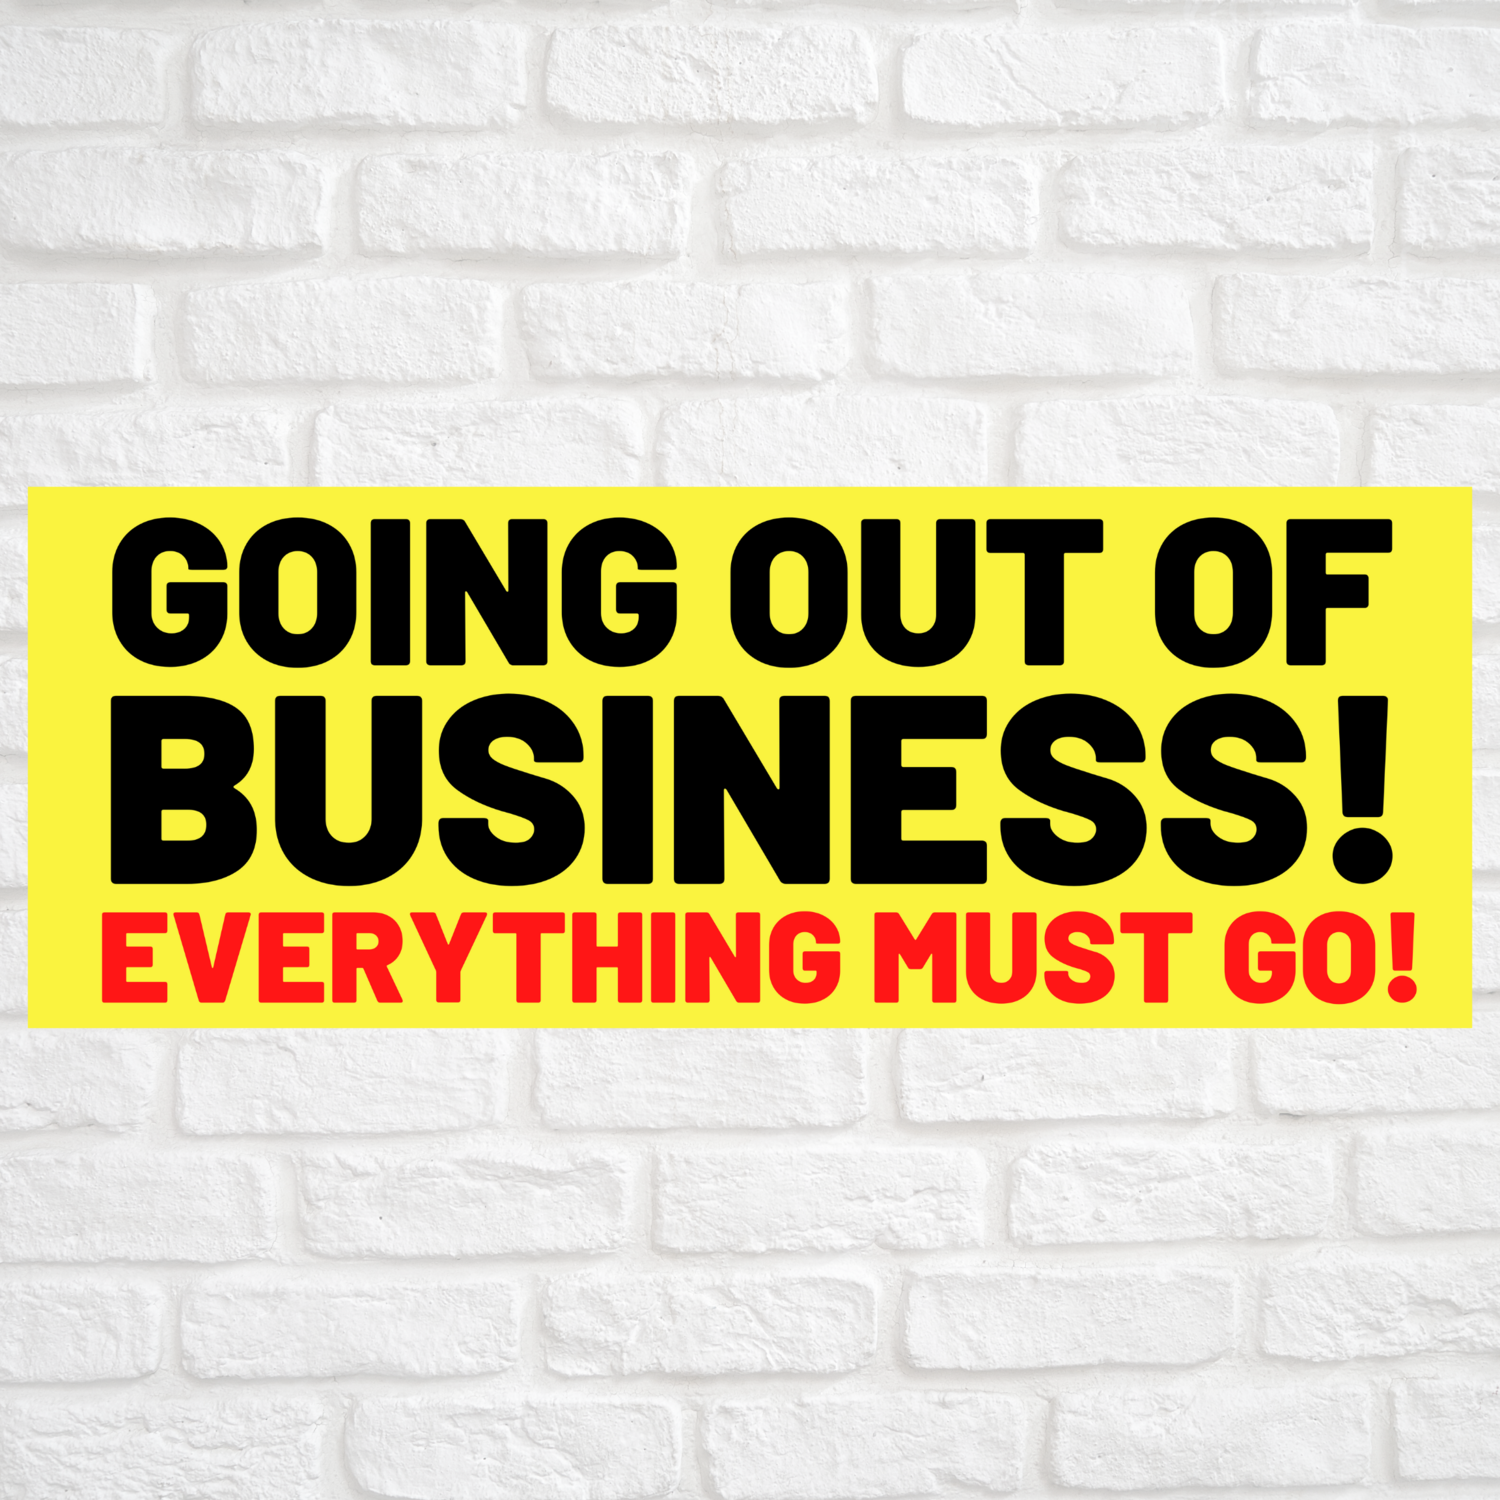 GOING OUT OF BUSINESS EVERYTHING MUST GO!